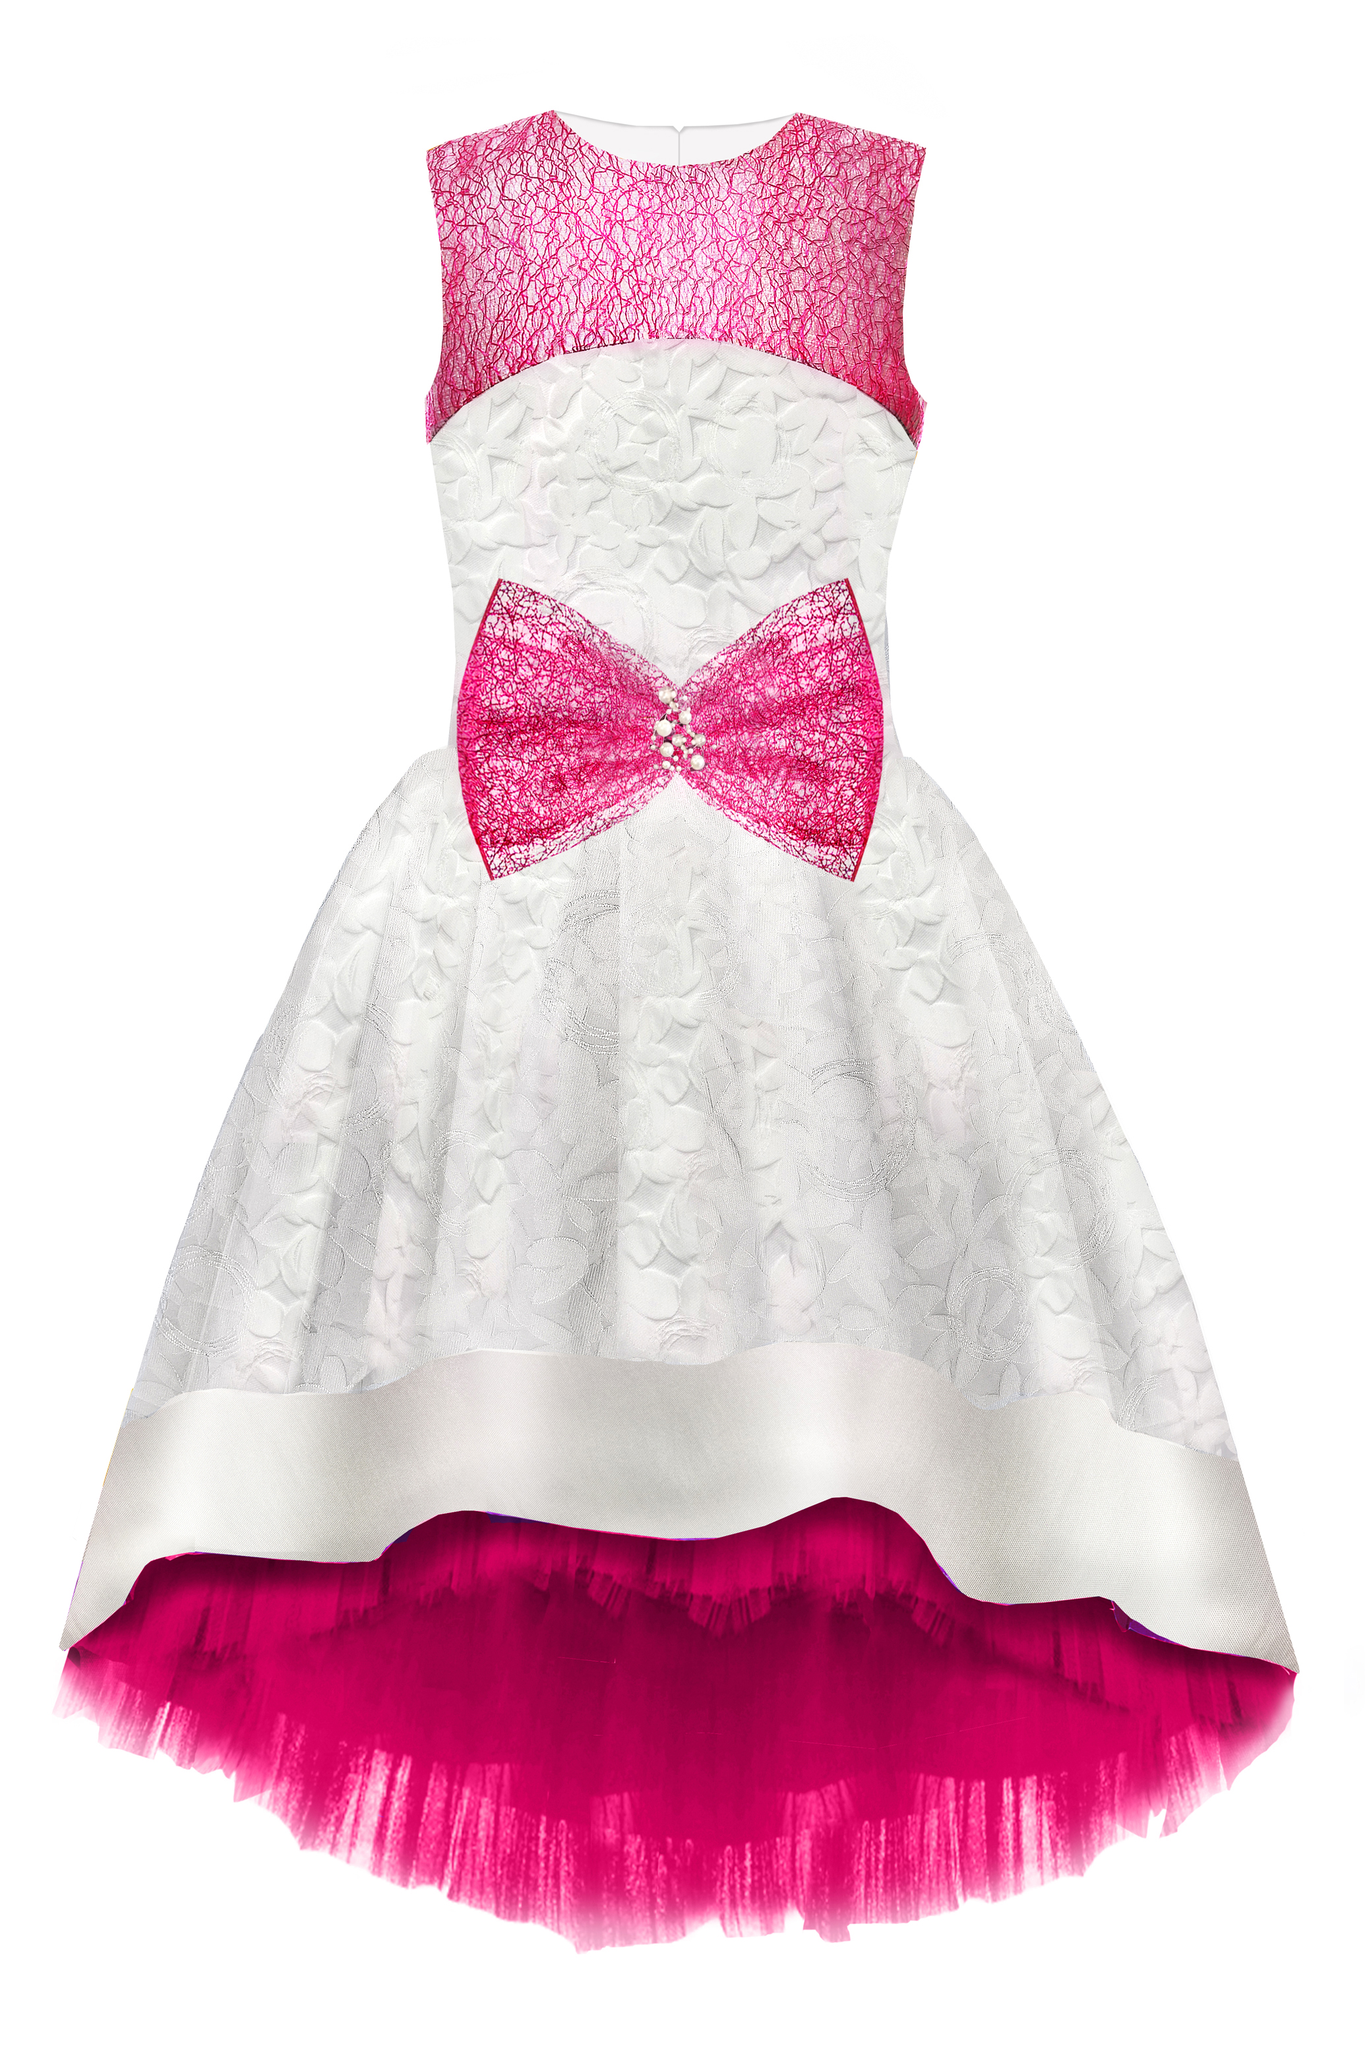 733f28f1f Lazy Francis White Jacquard High-Low Girls Dress with Pink Lace Bow ...